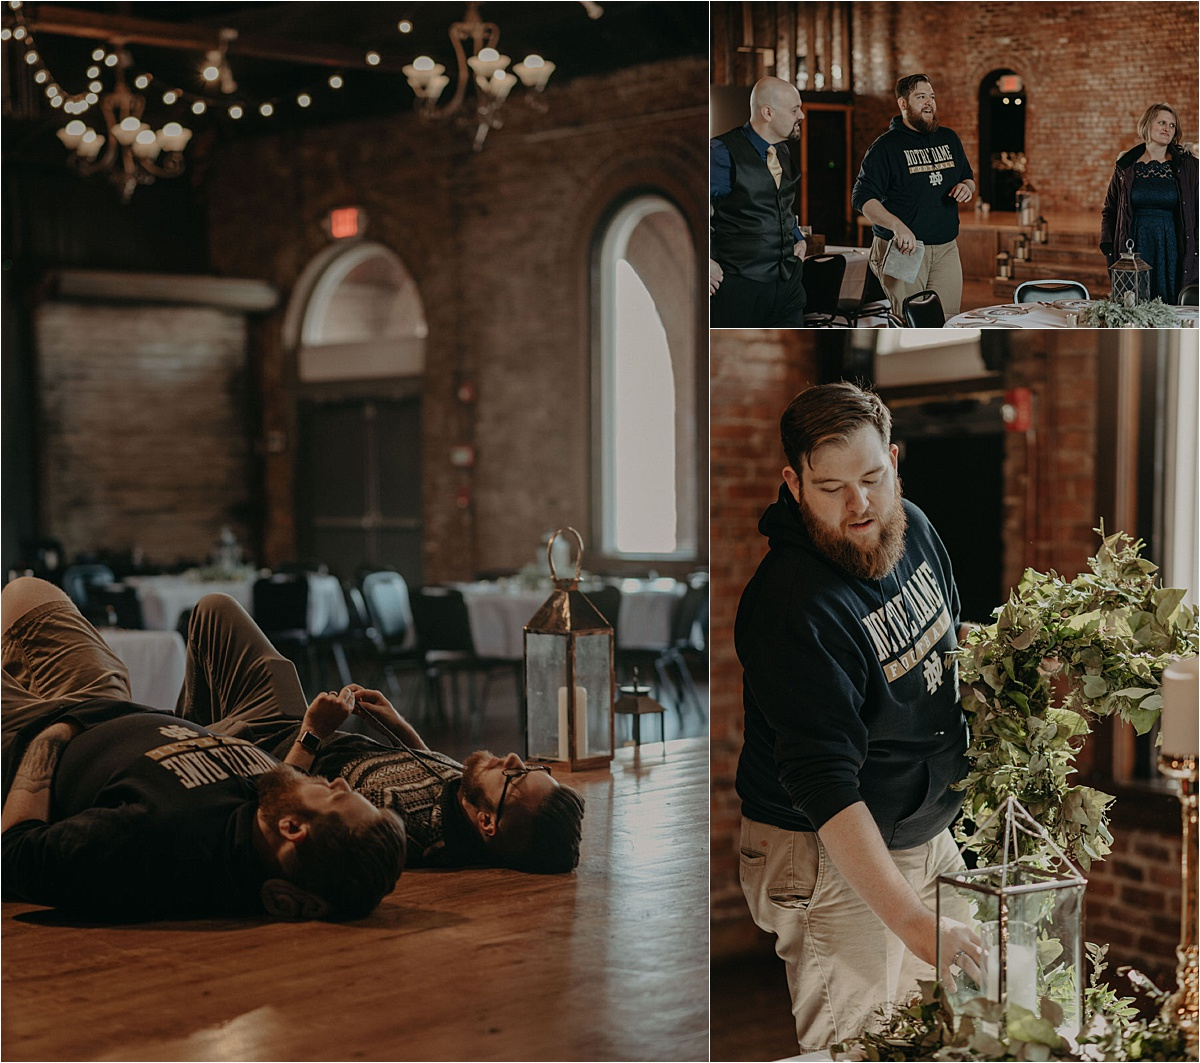 The grooms take a break and lay back on the stage at their historic wedding venue, the Church on Main.